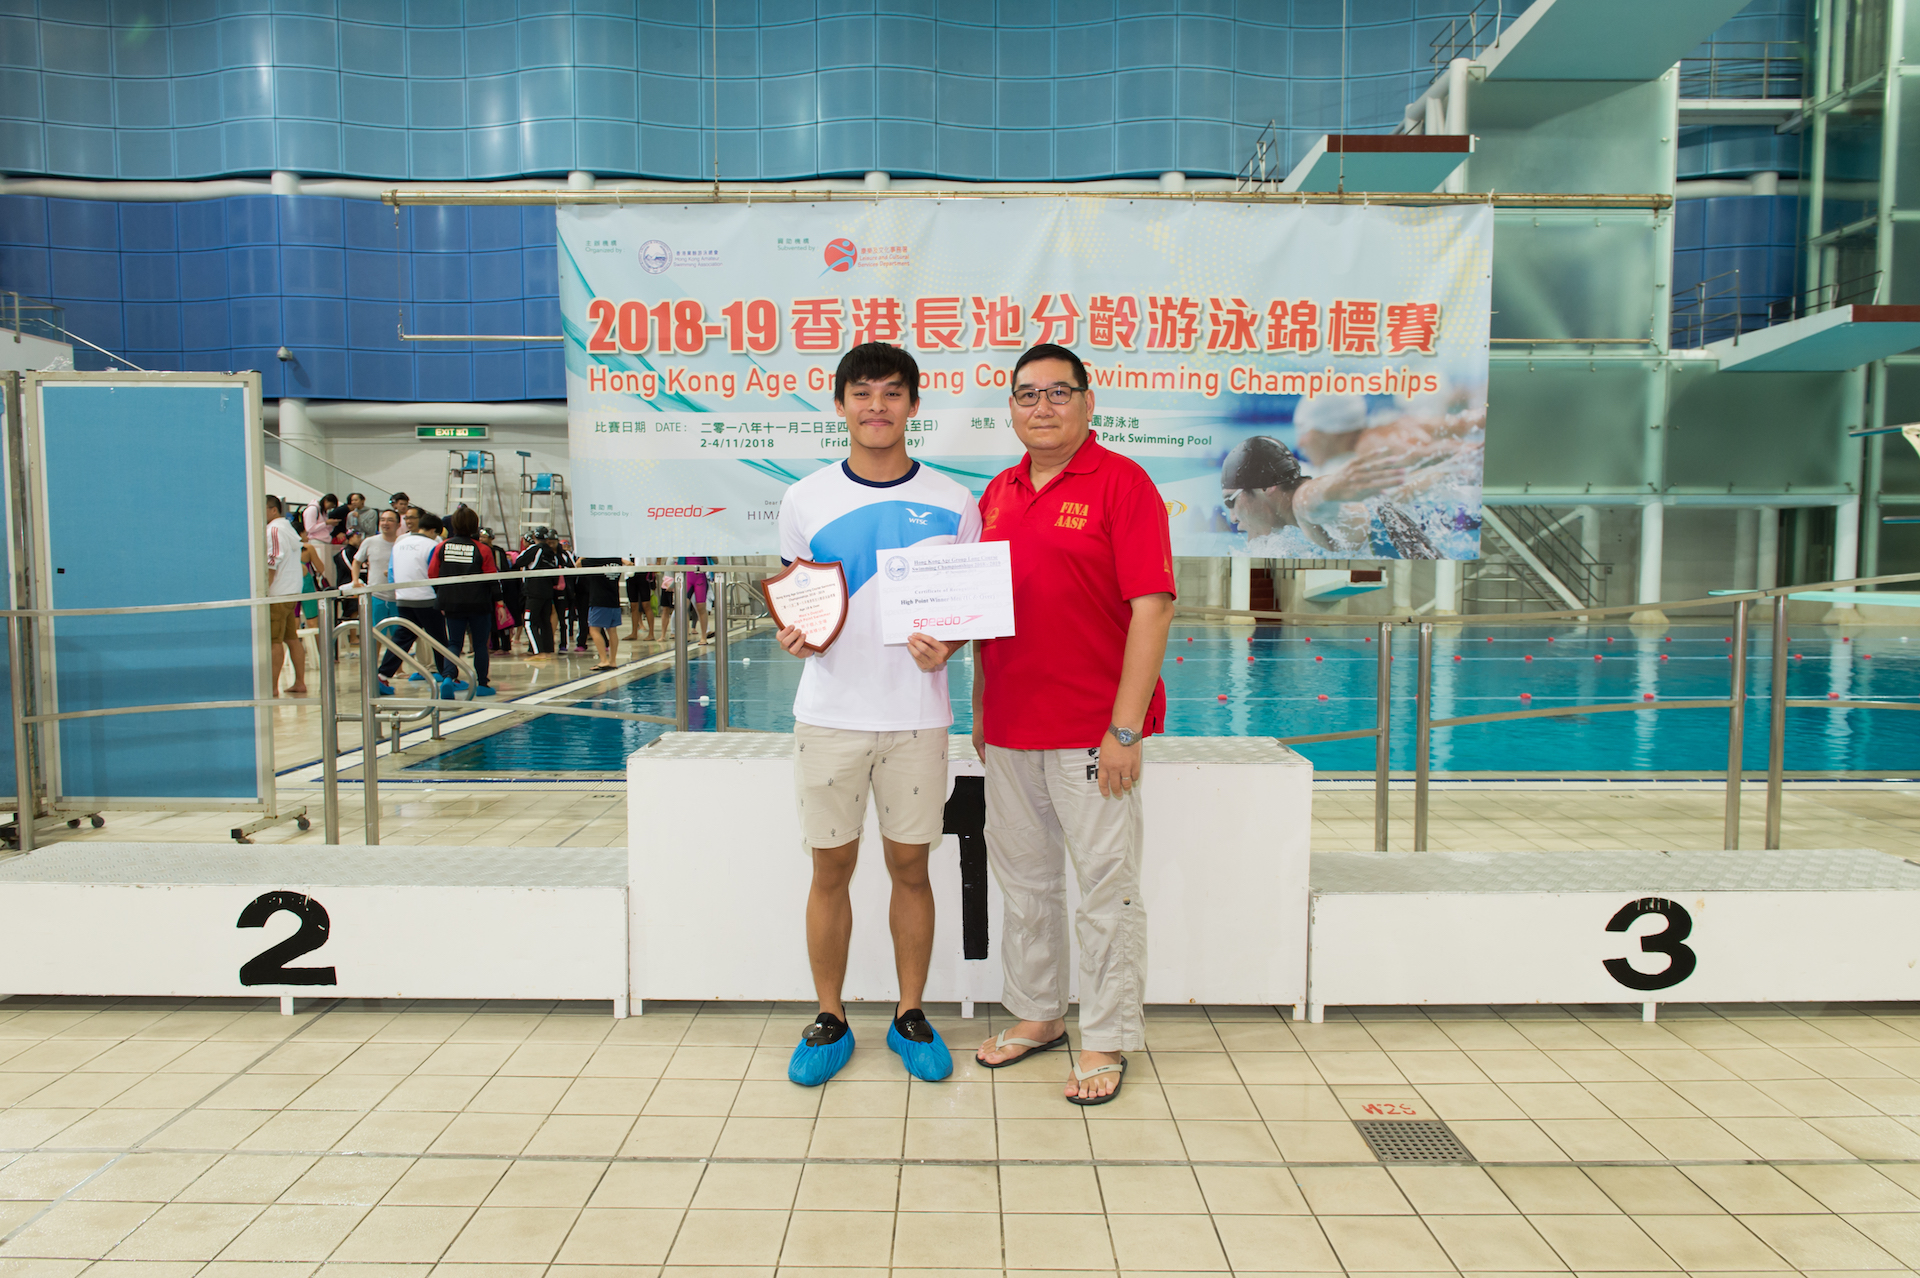 Win Tin Swimming Club - 2018 LCC 6